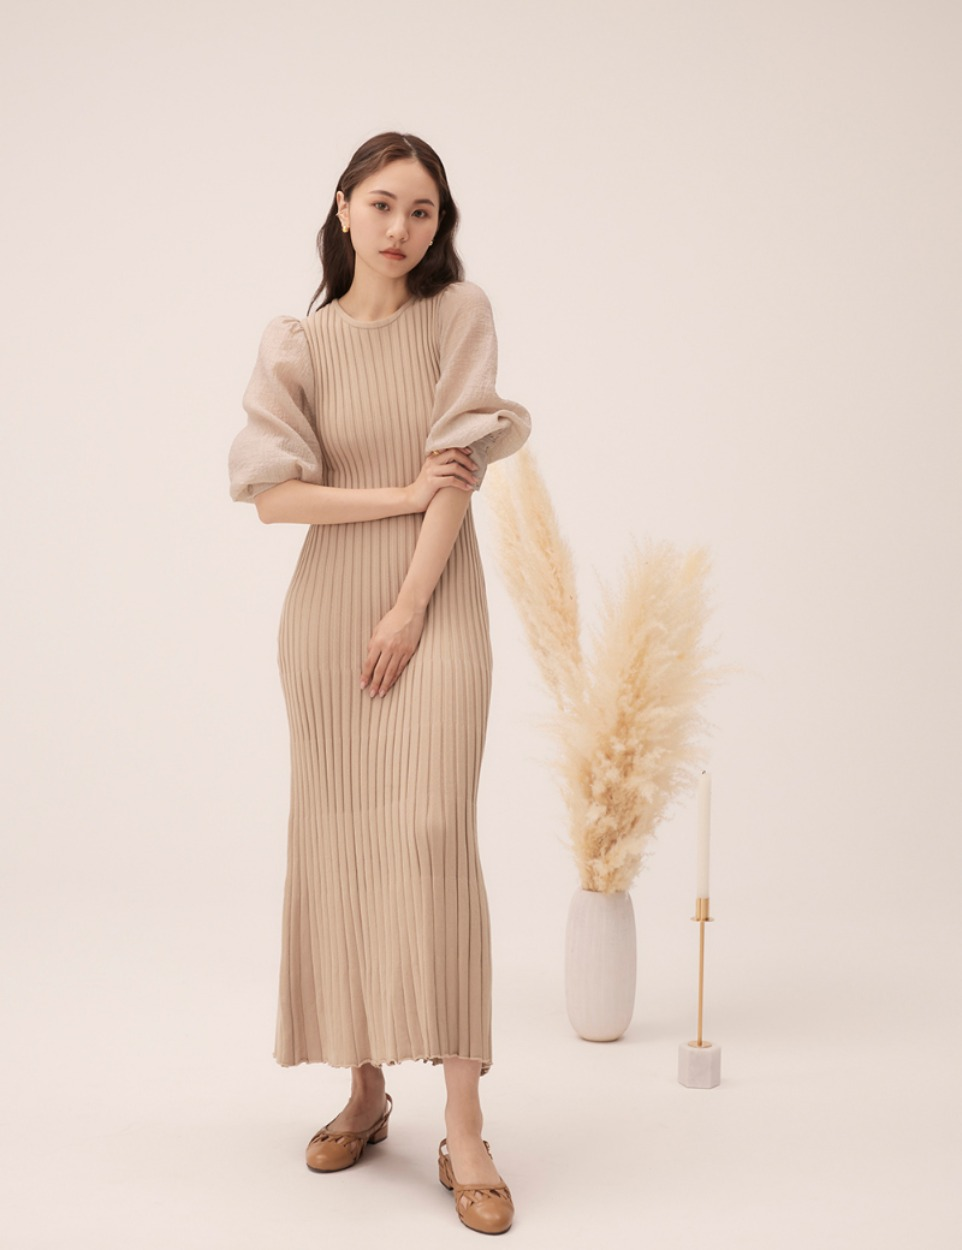 【PRE】Puff knit dress